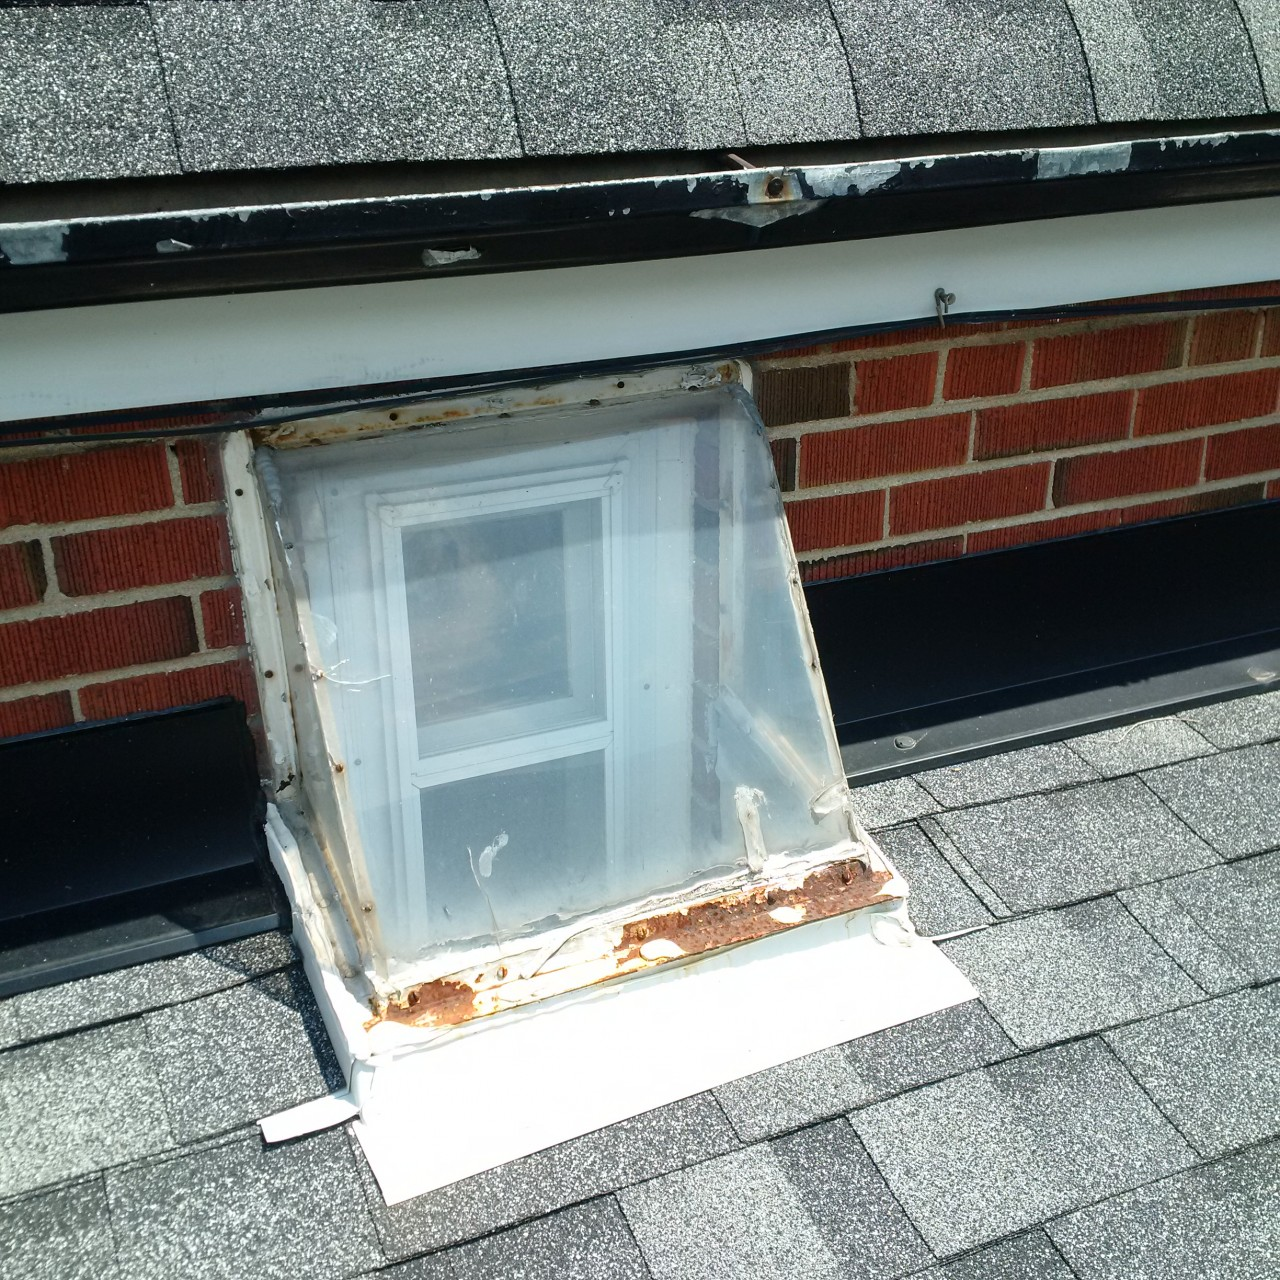 These are examples of homemade skylights.